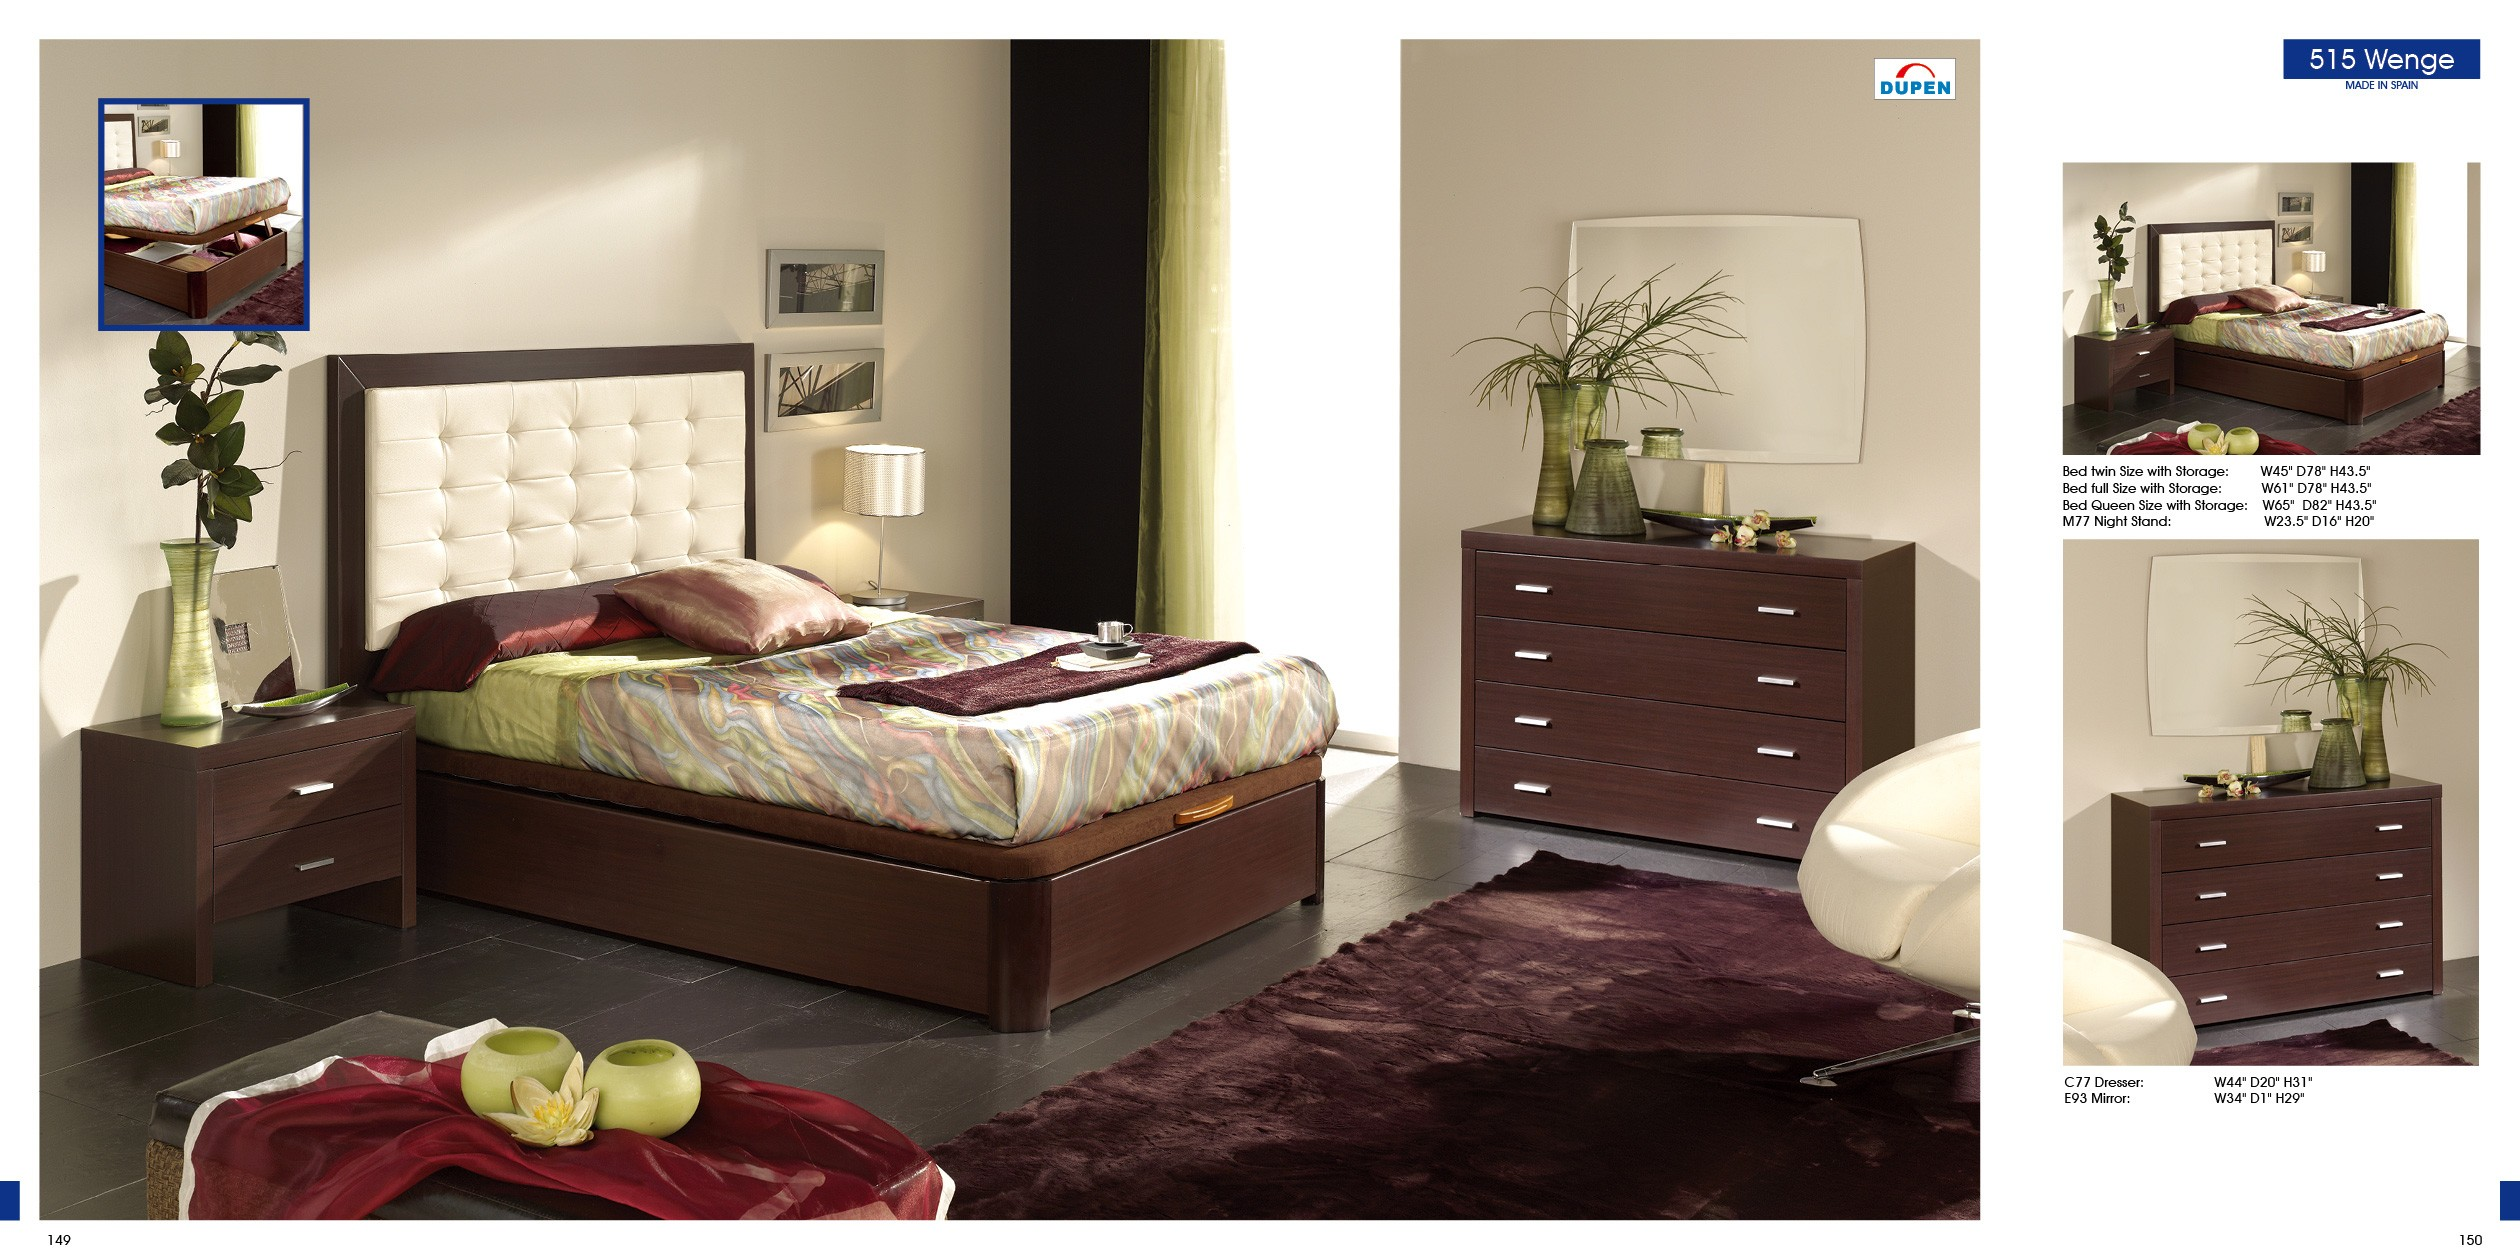 ESF Twin Size Beds Alicante 515 Wenge, M77, C77